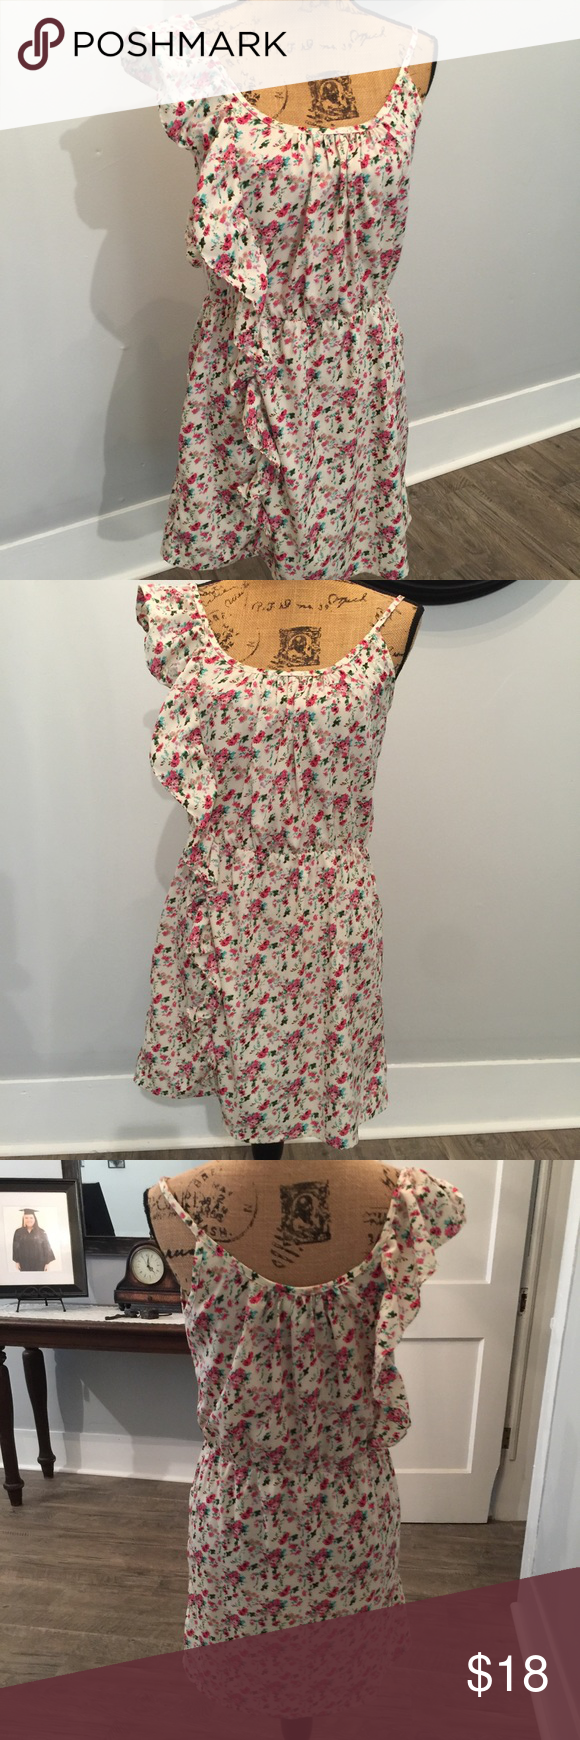 Adorable floral printed slip dress This is such a beautiful floral printed slip dress by Envy Me.. tag says XL but I'm going to say it fits like a L.. so pretty for this time of the year EnvyMe Dresses Mini